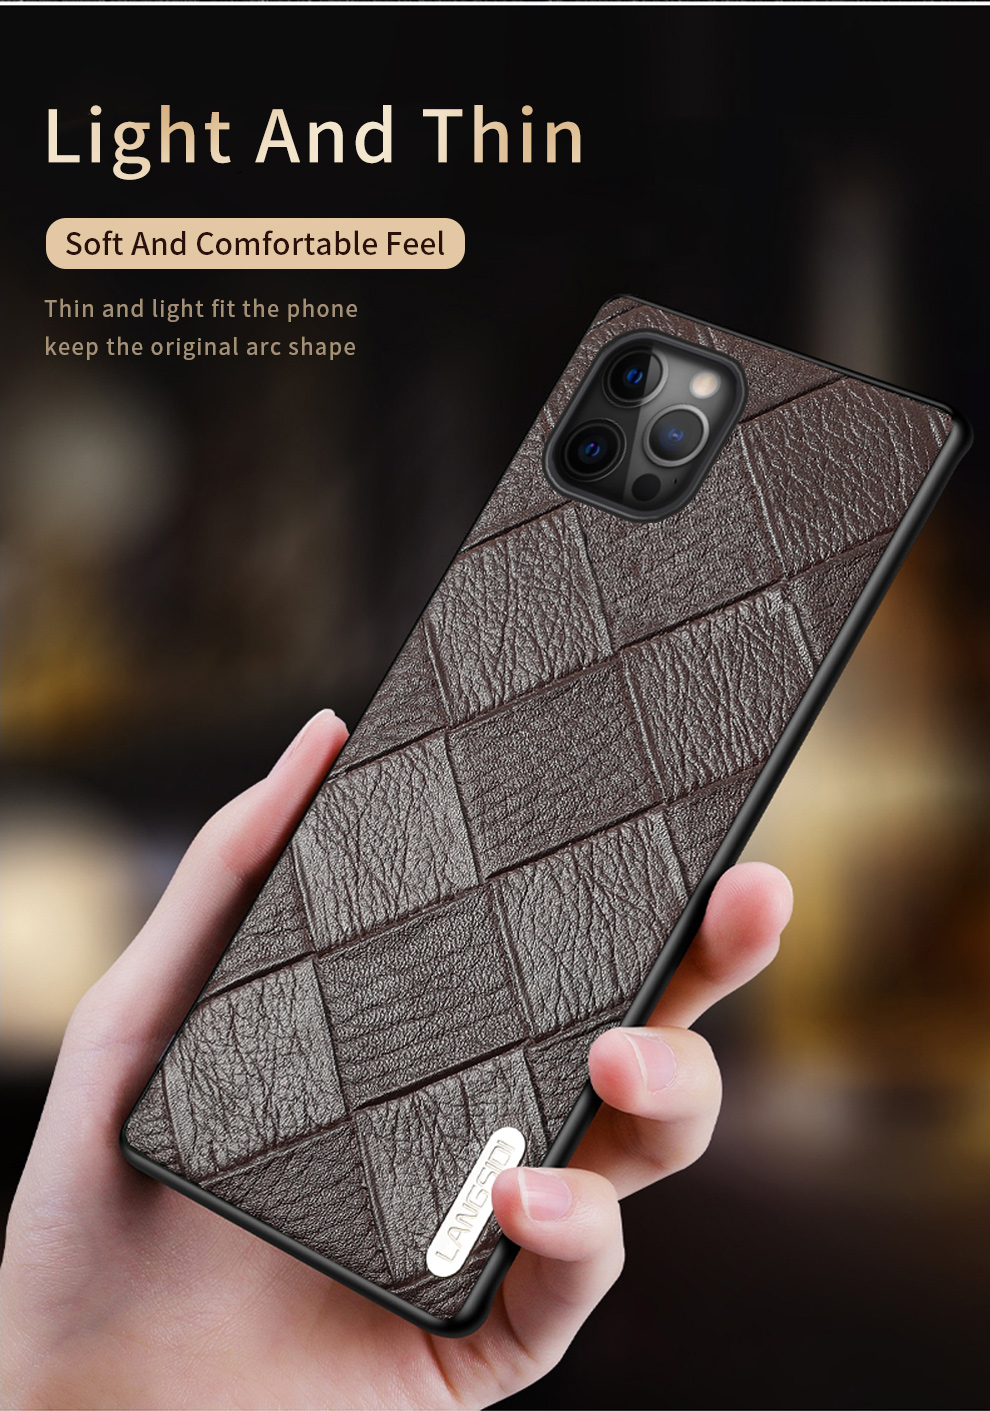 Genuine Leather Rhombus Grain Phone Cases For iPhone 12 Mini